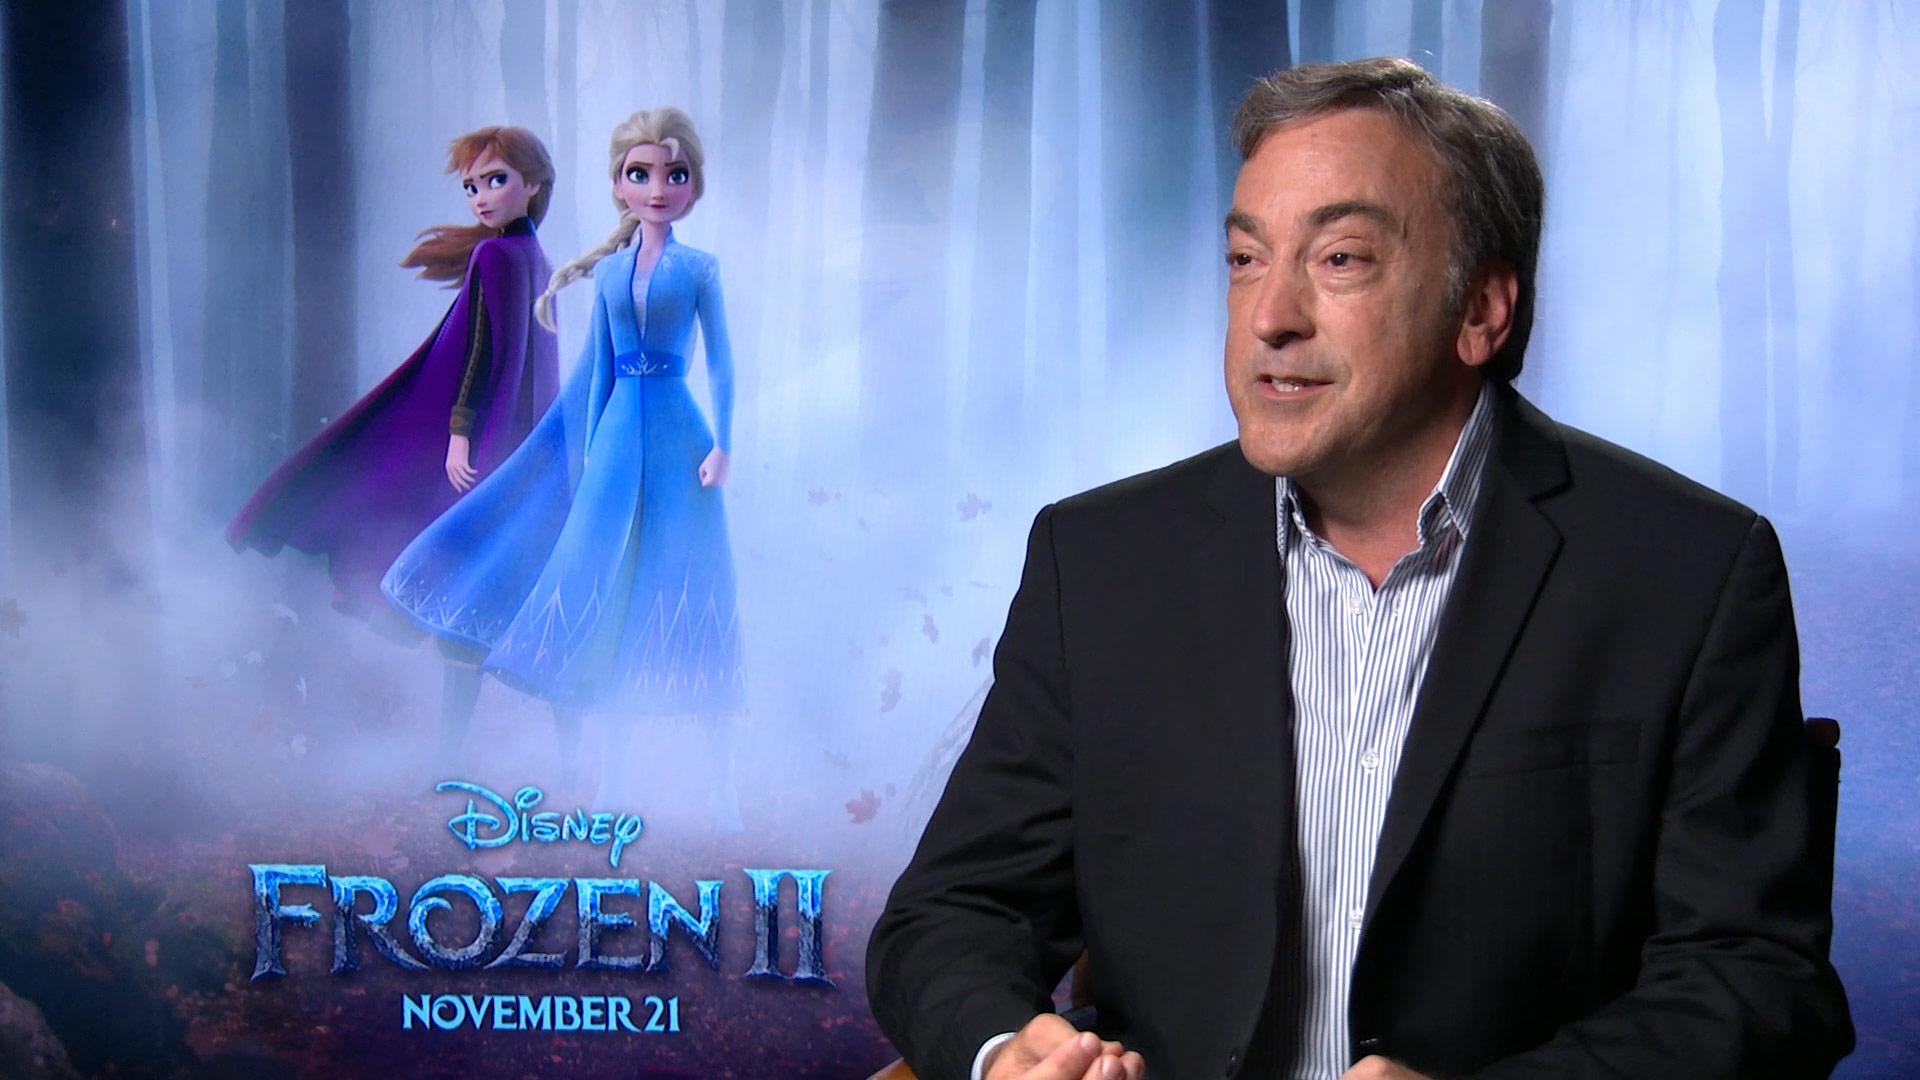 Frozen II Producer Peter Del Vecho on Returning to Arendelle, Composing with the Lopezes, and Doing What's Right for the Story